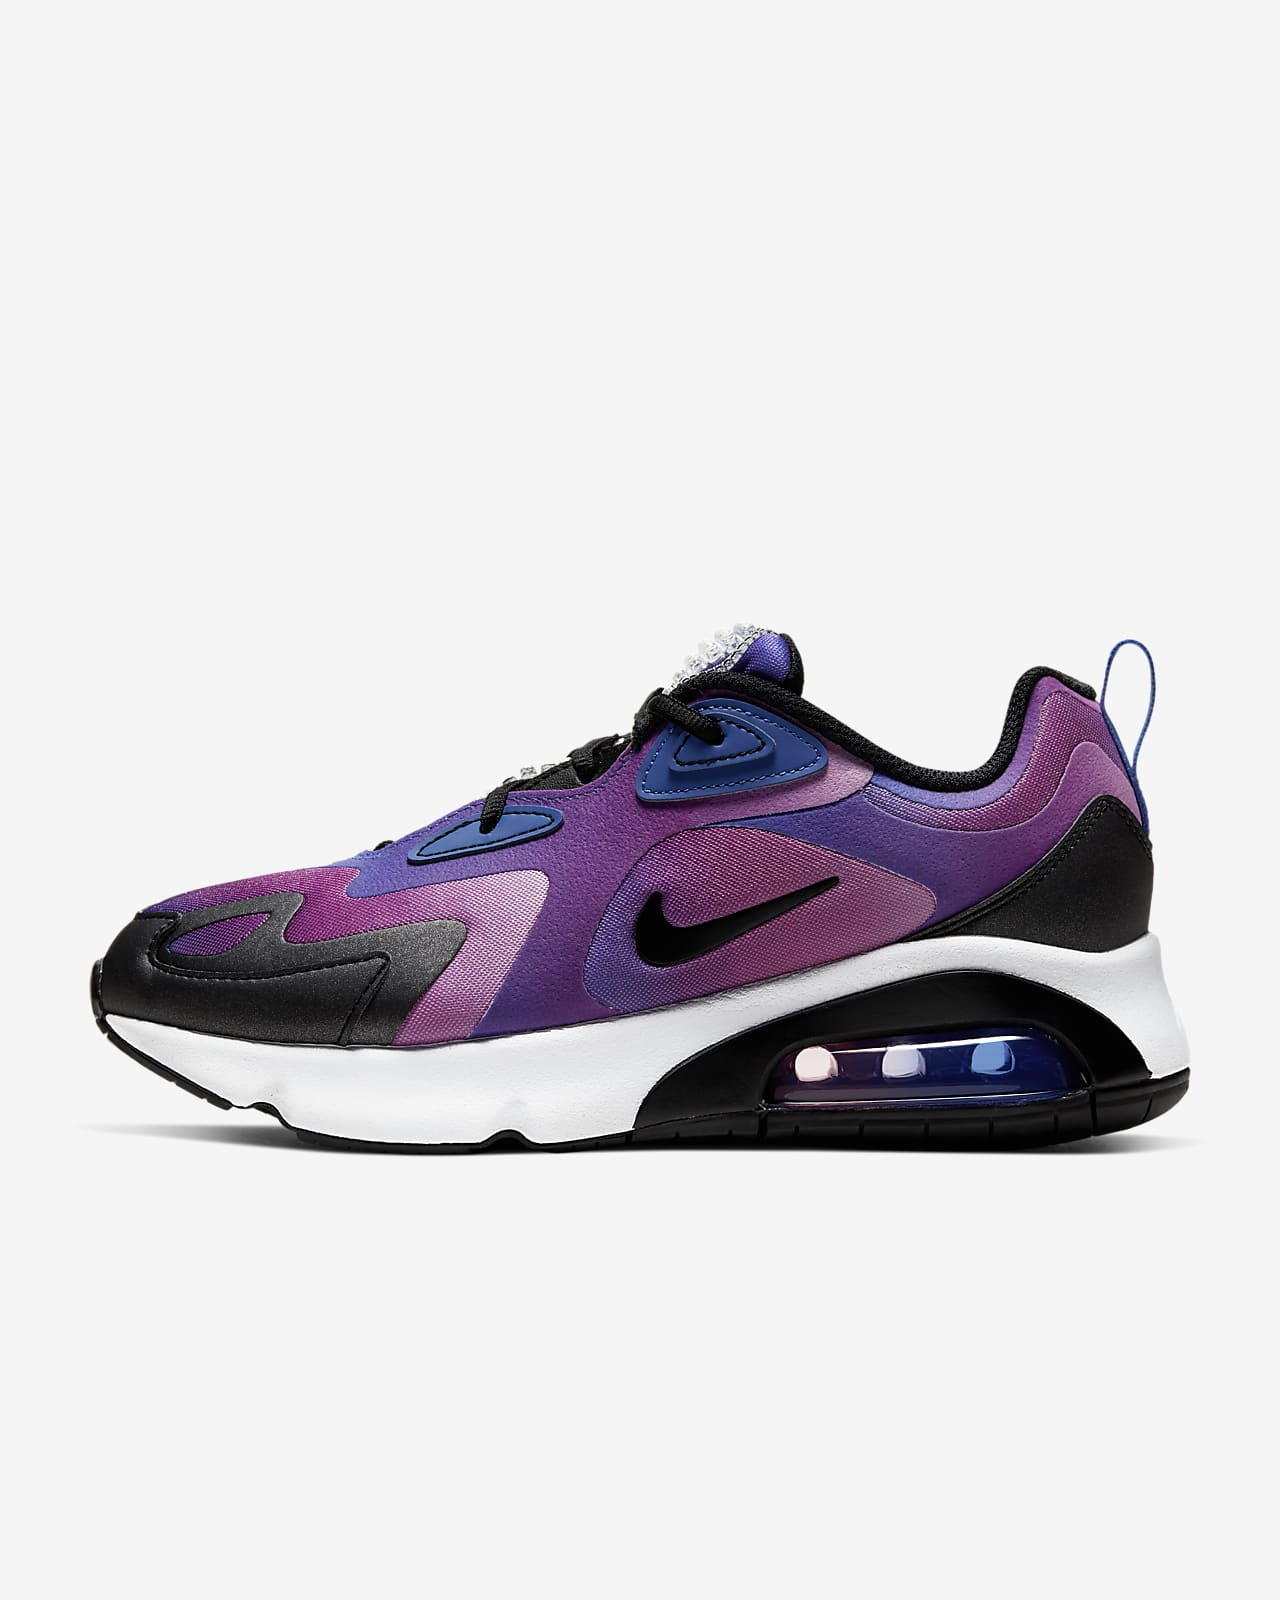 nike 270 mujer colores